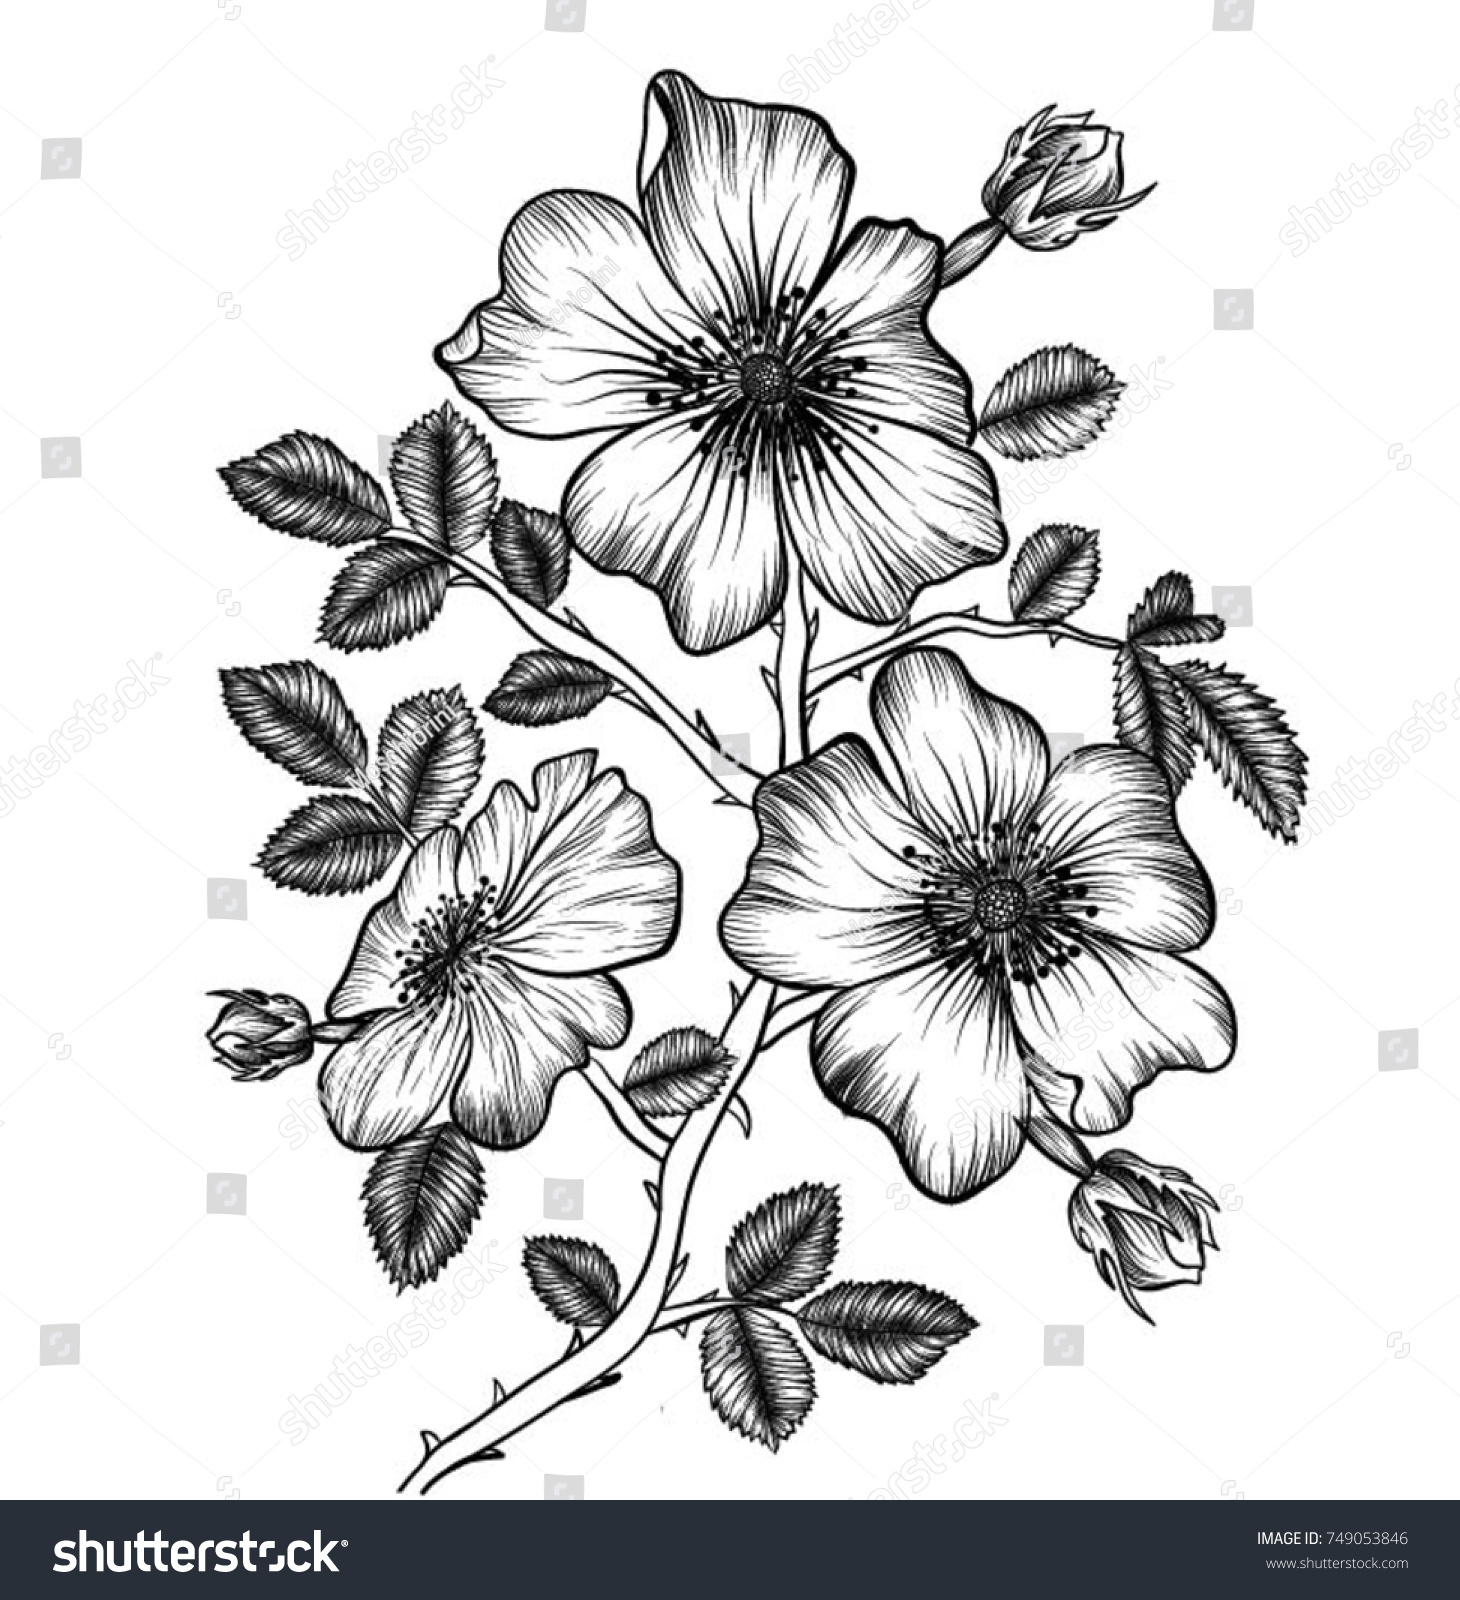 Handdrawn Wild Roses Flowers Drawing Lineart Vector Stock Vector